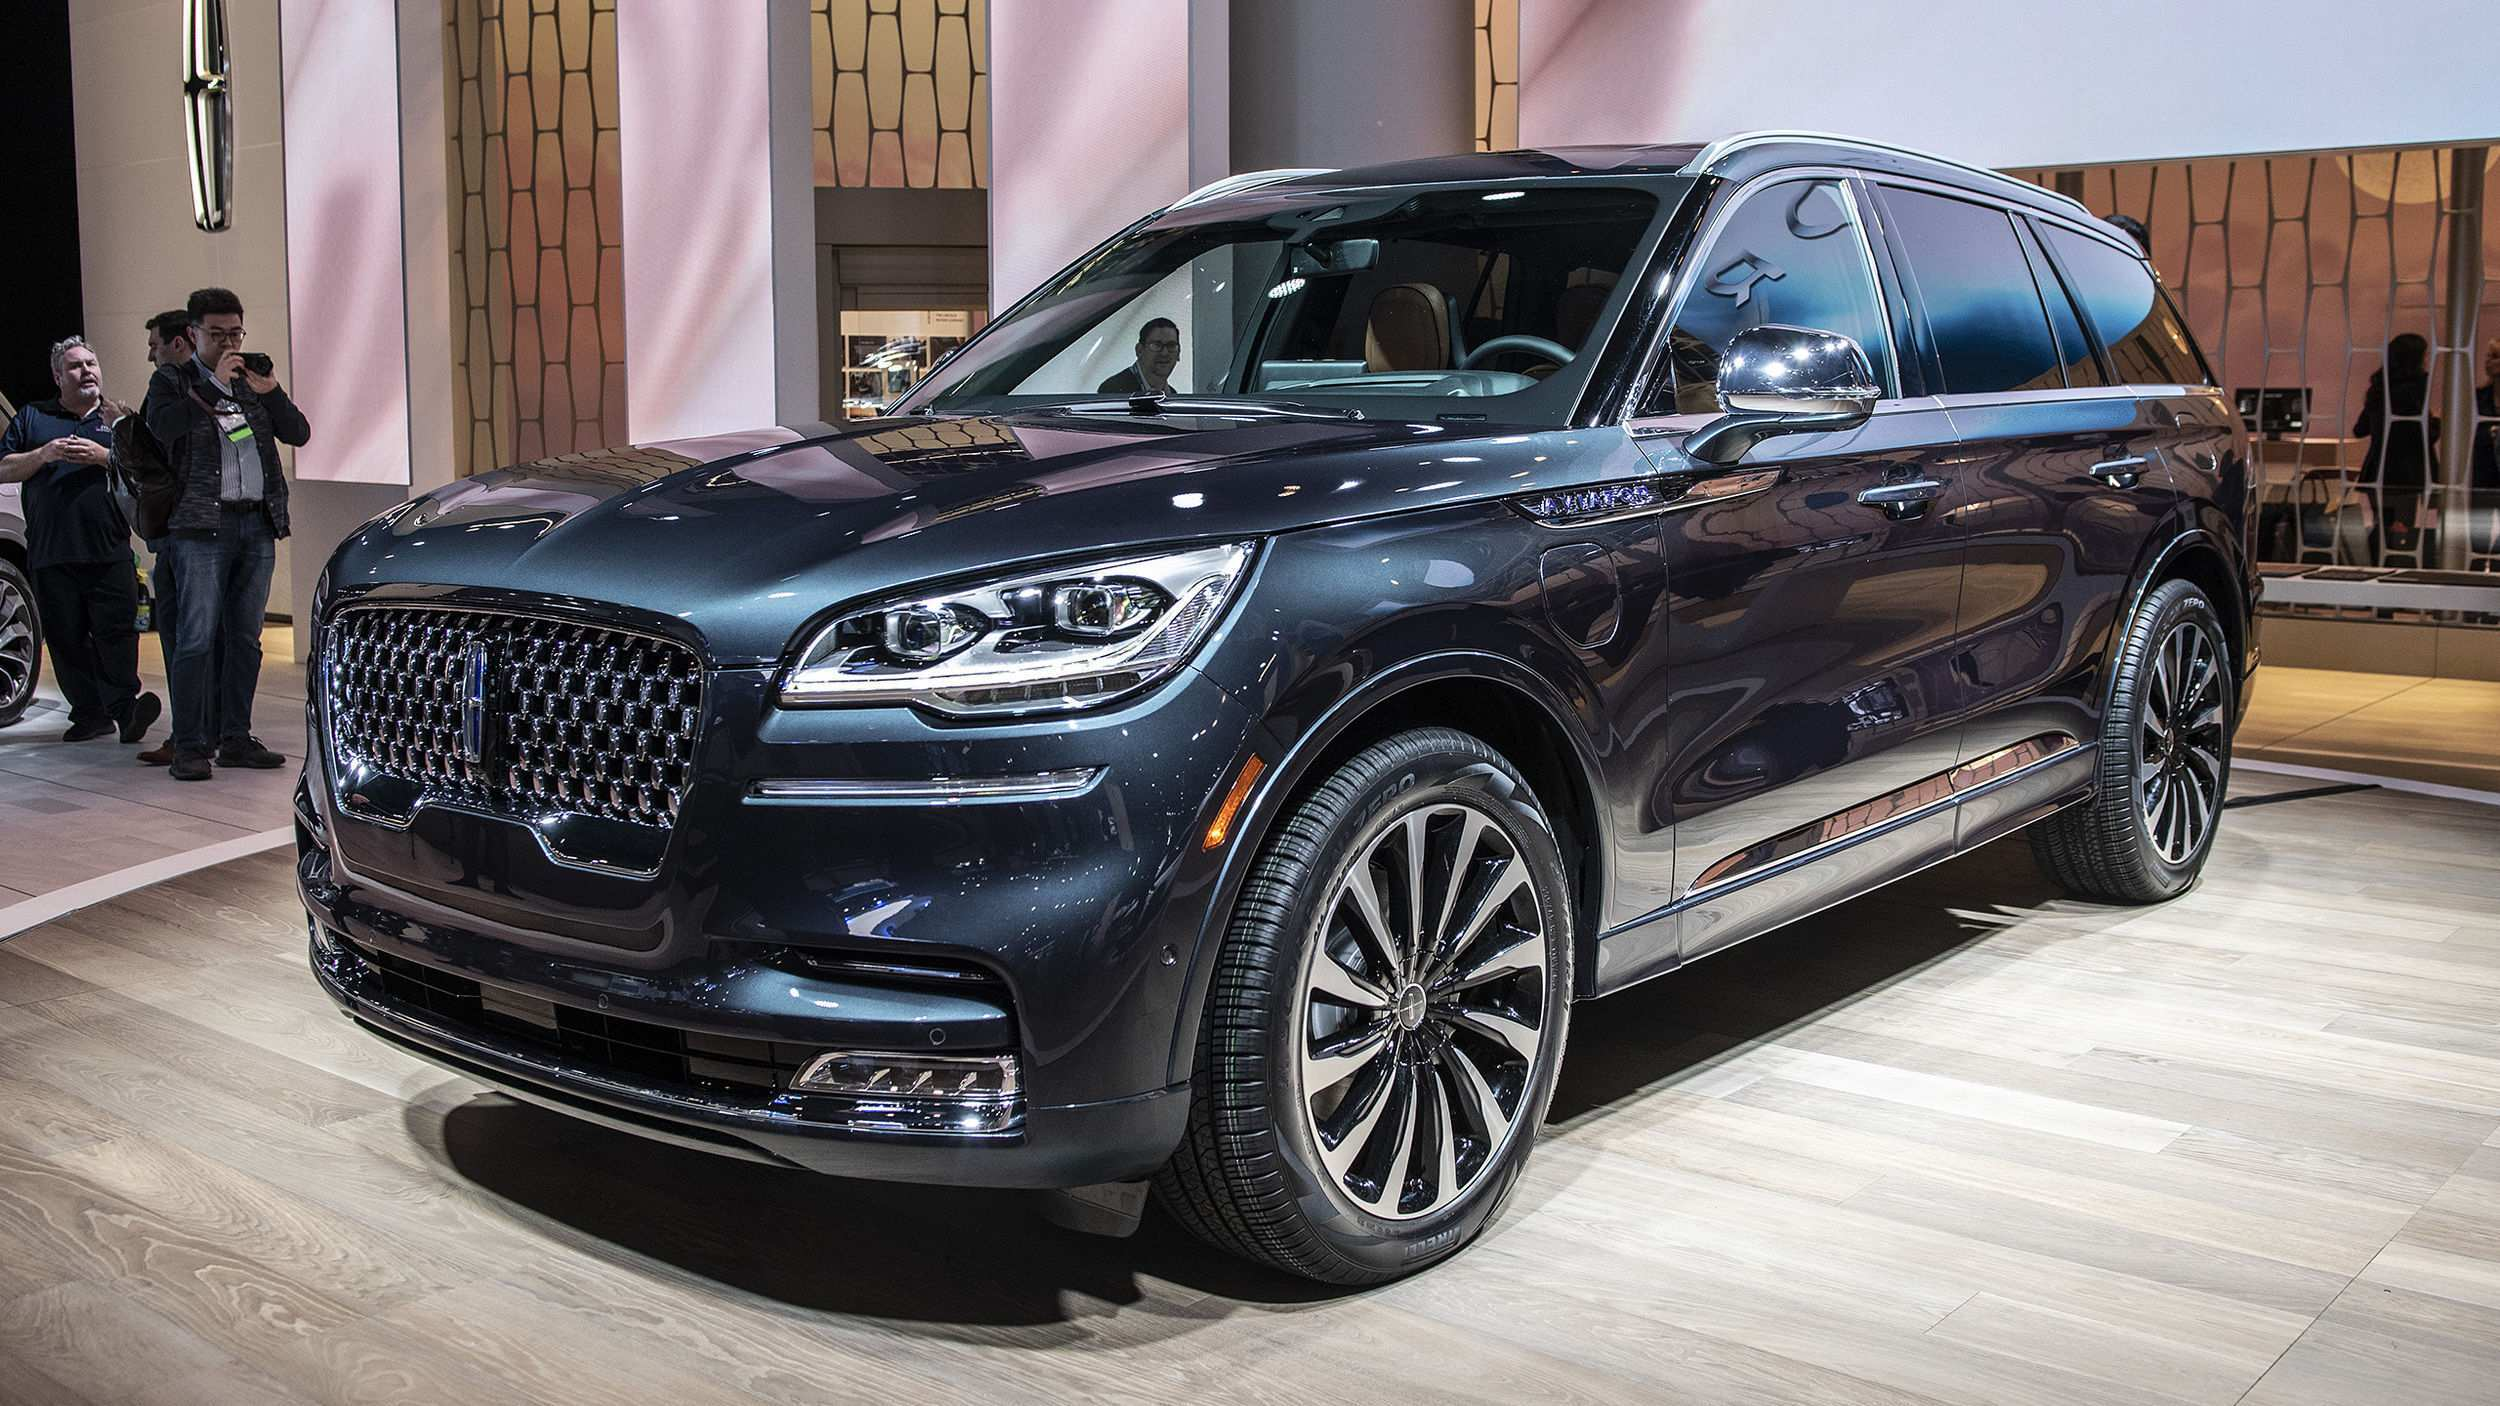 59 A Ford Lincoln Navigator 2020 New Model and Performance